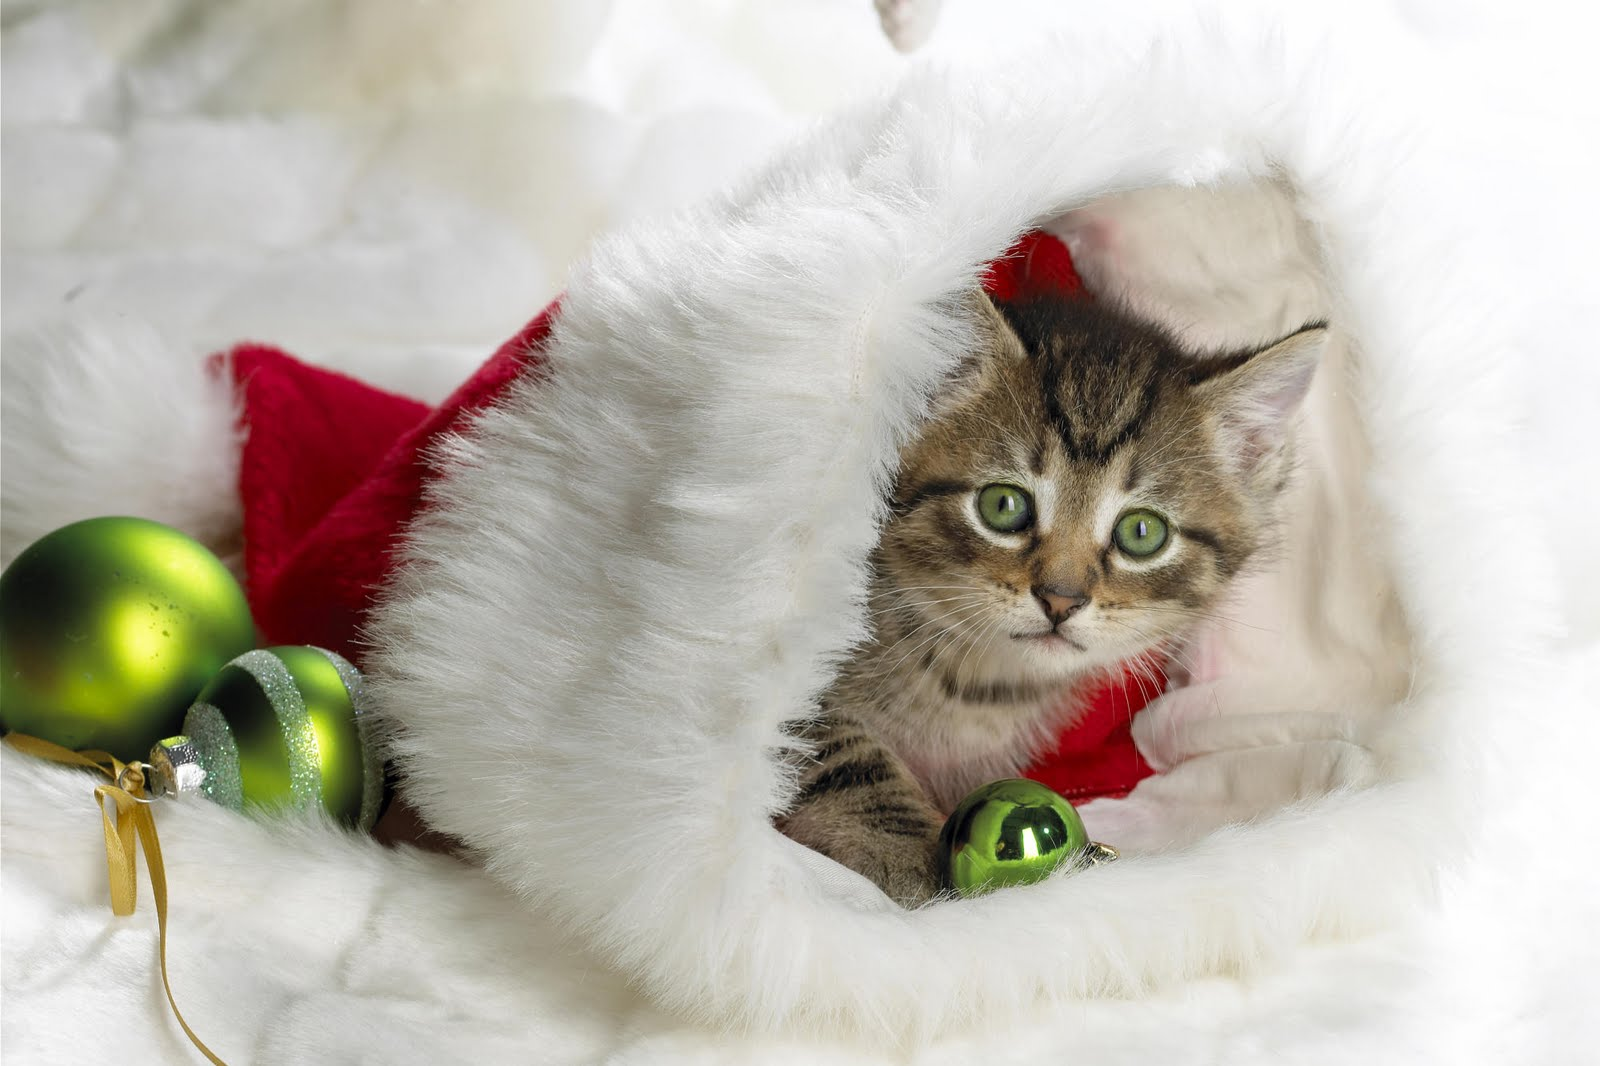 Cute Animal Christmas Wallpaper 7894 Hd Wallpapers in Celebrations 1600x1066